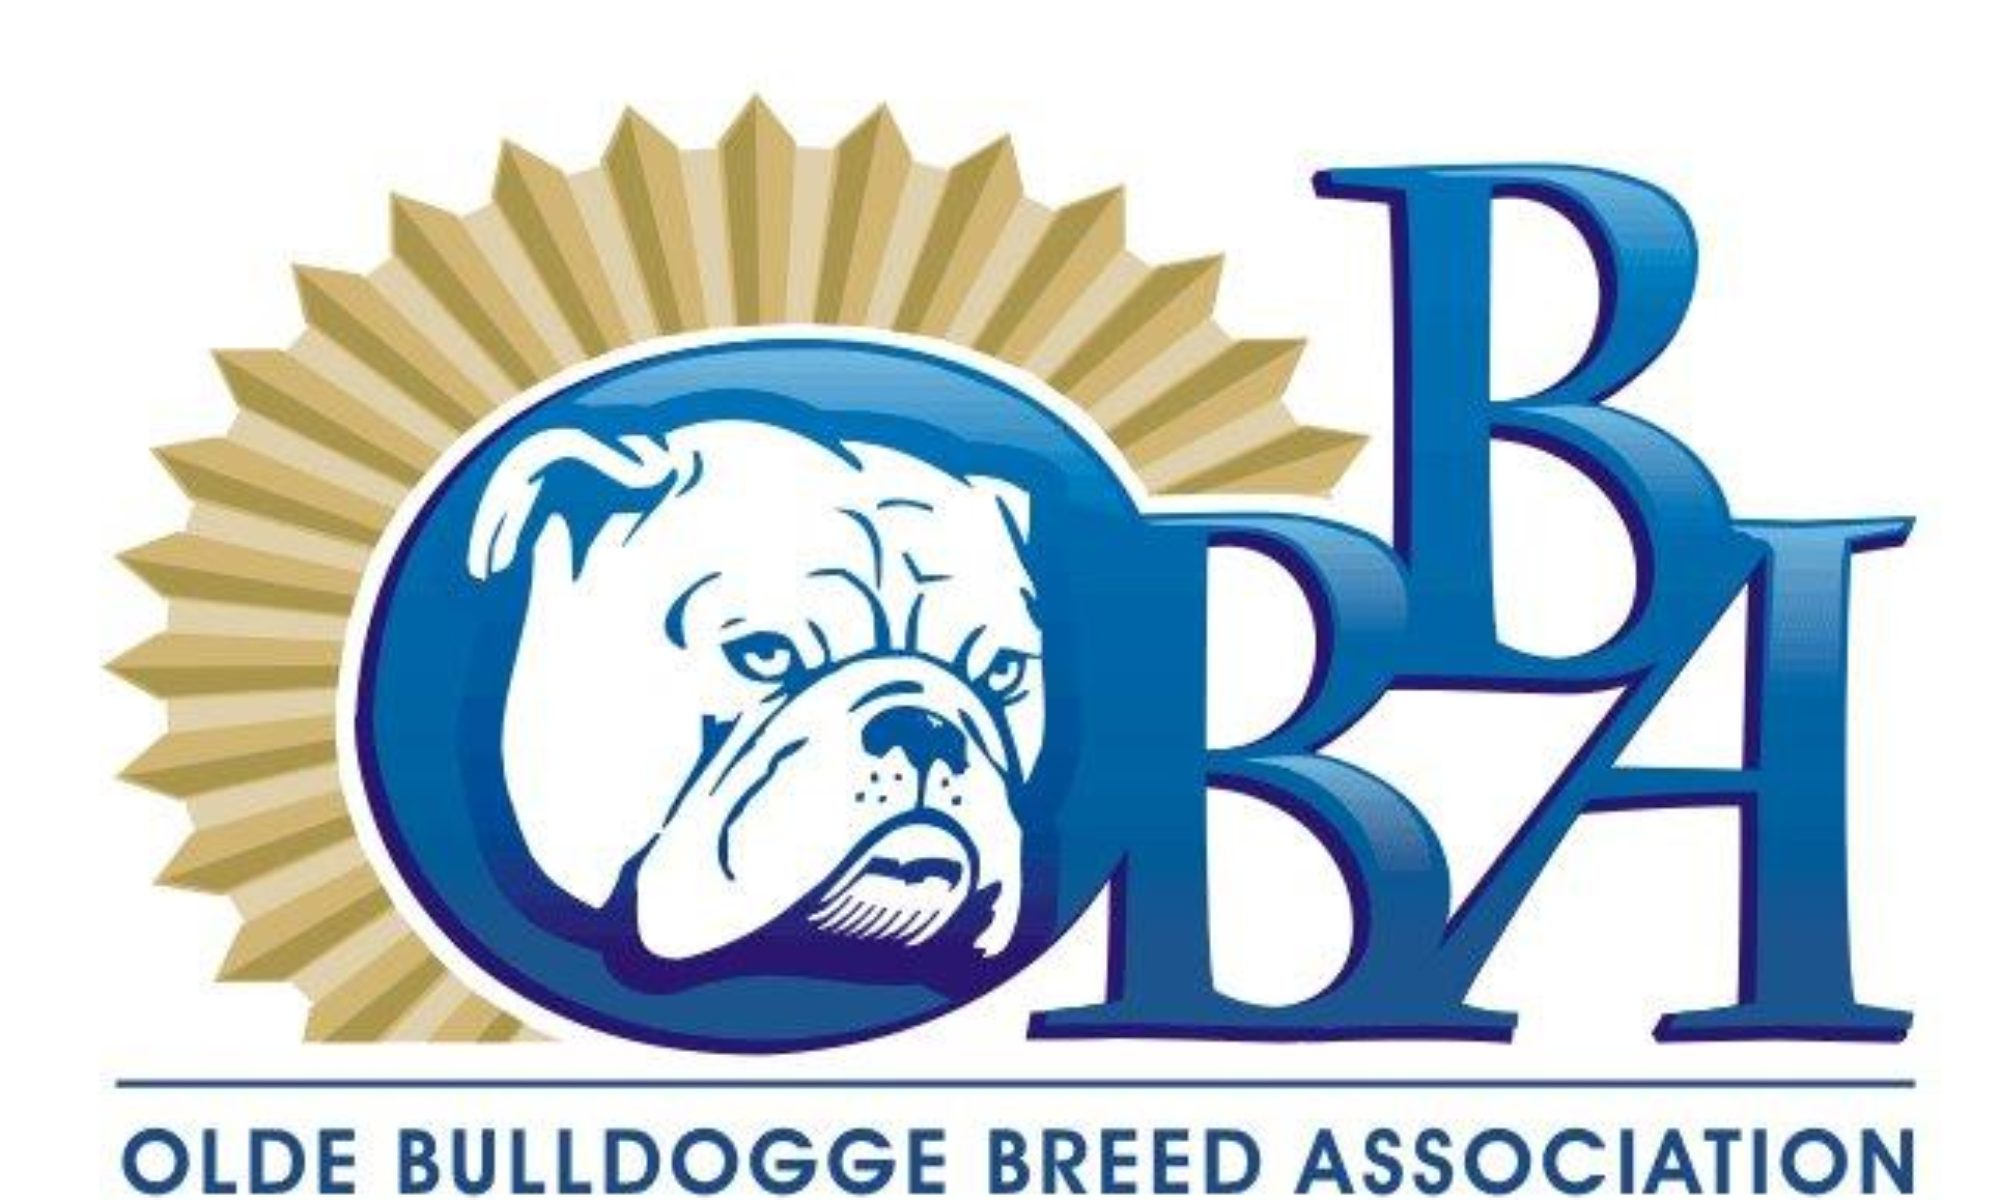 Olde Bulldogge Breed Association